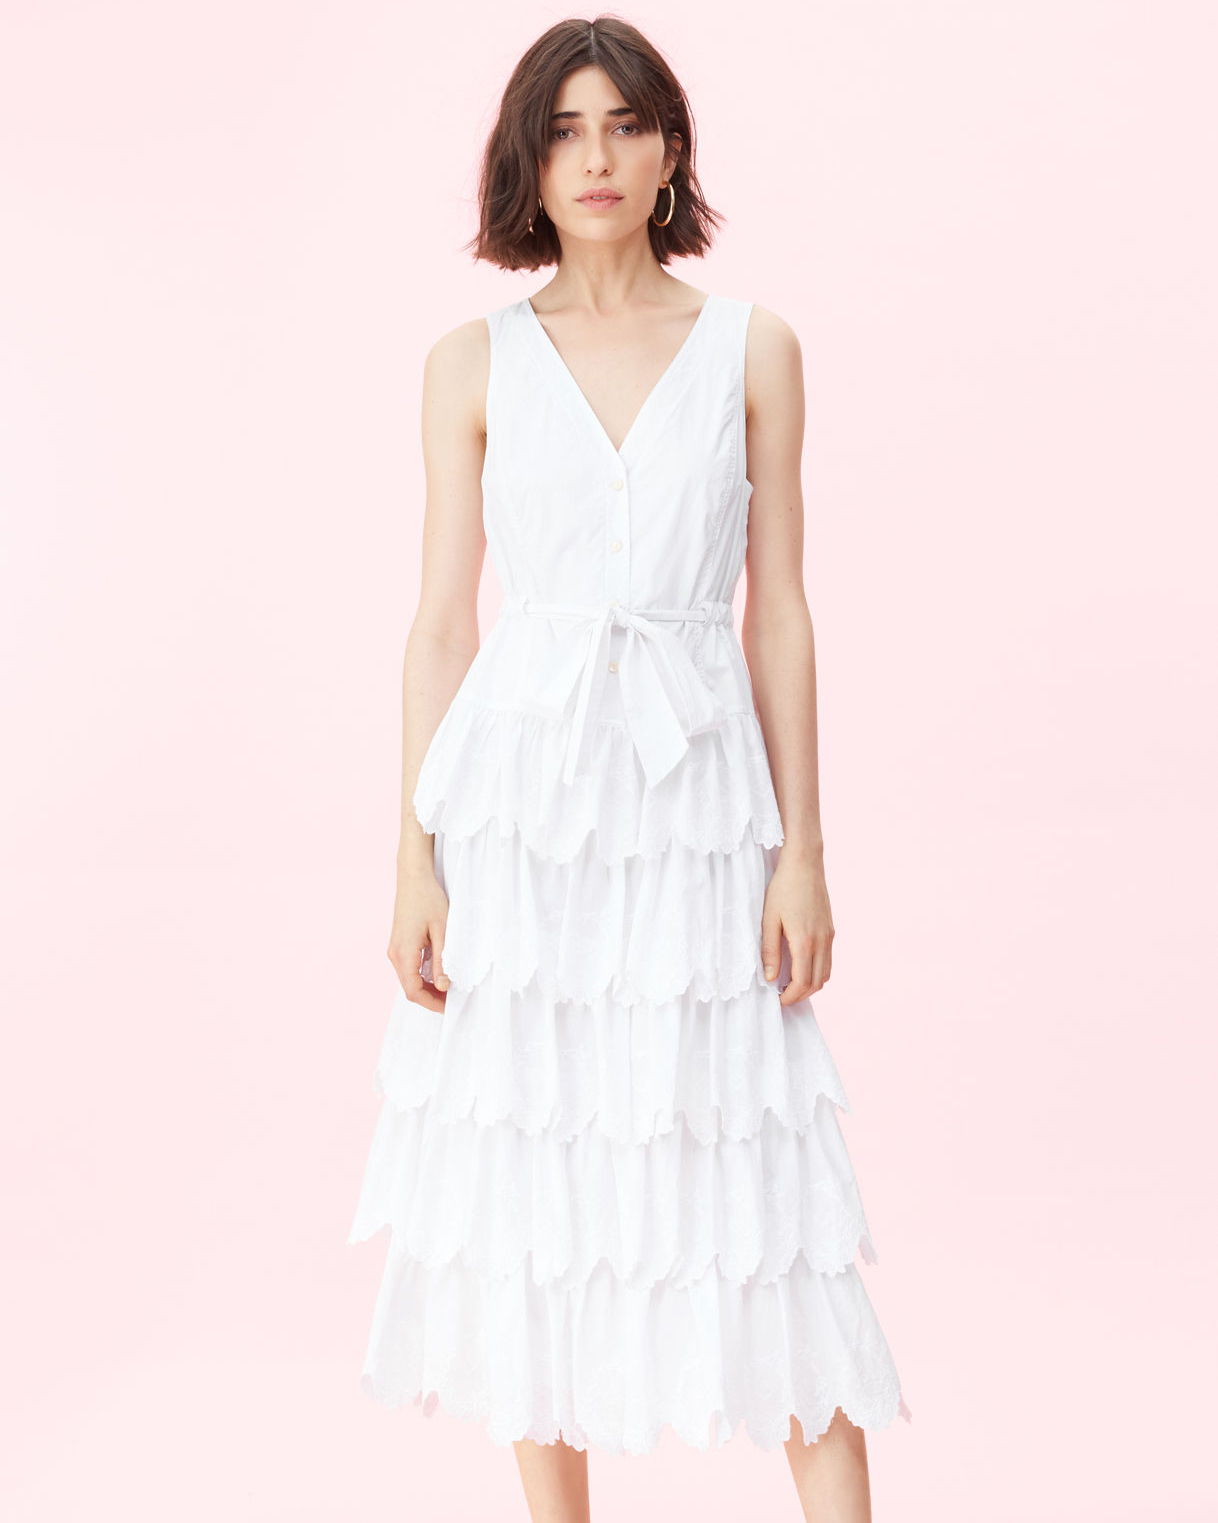 white sleeveless ruffled dress